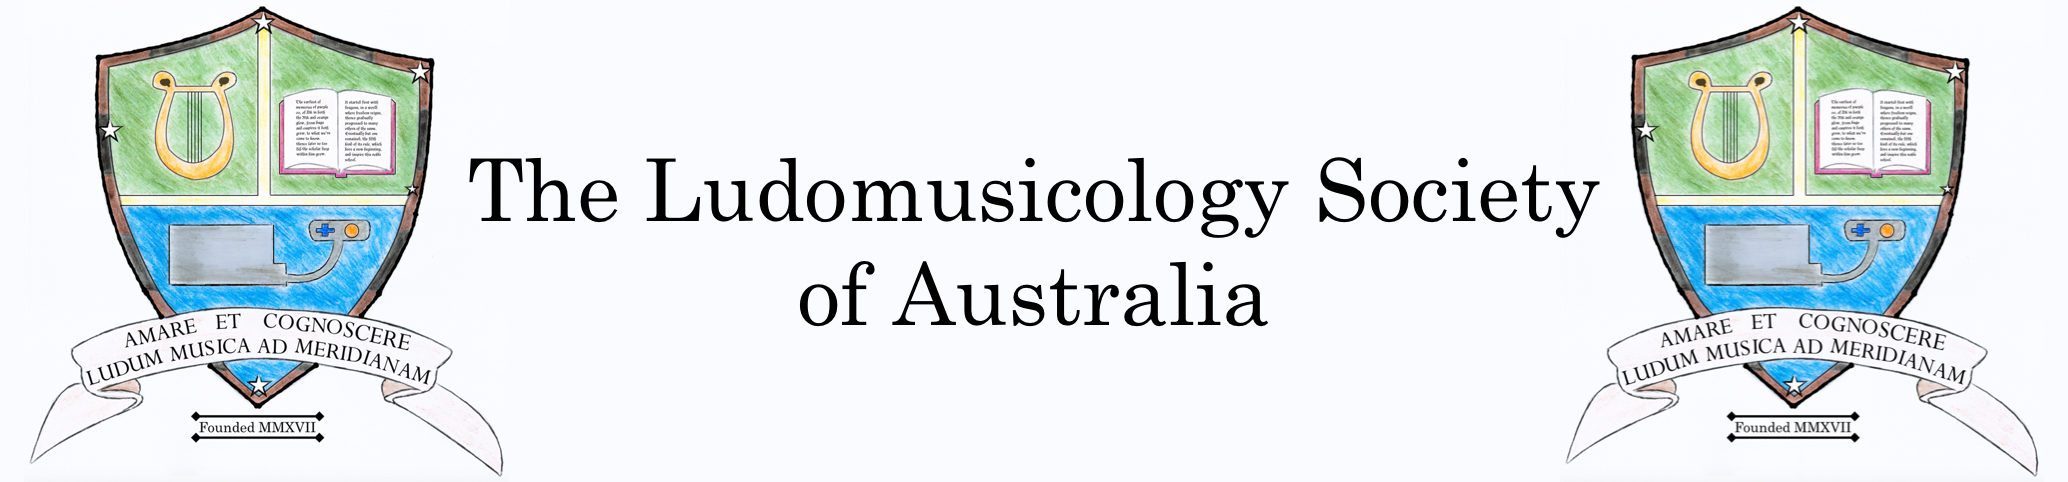 The Ludomusicology Society of Australia